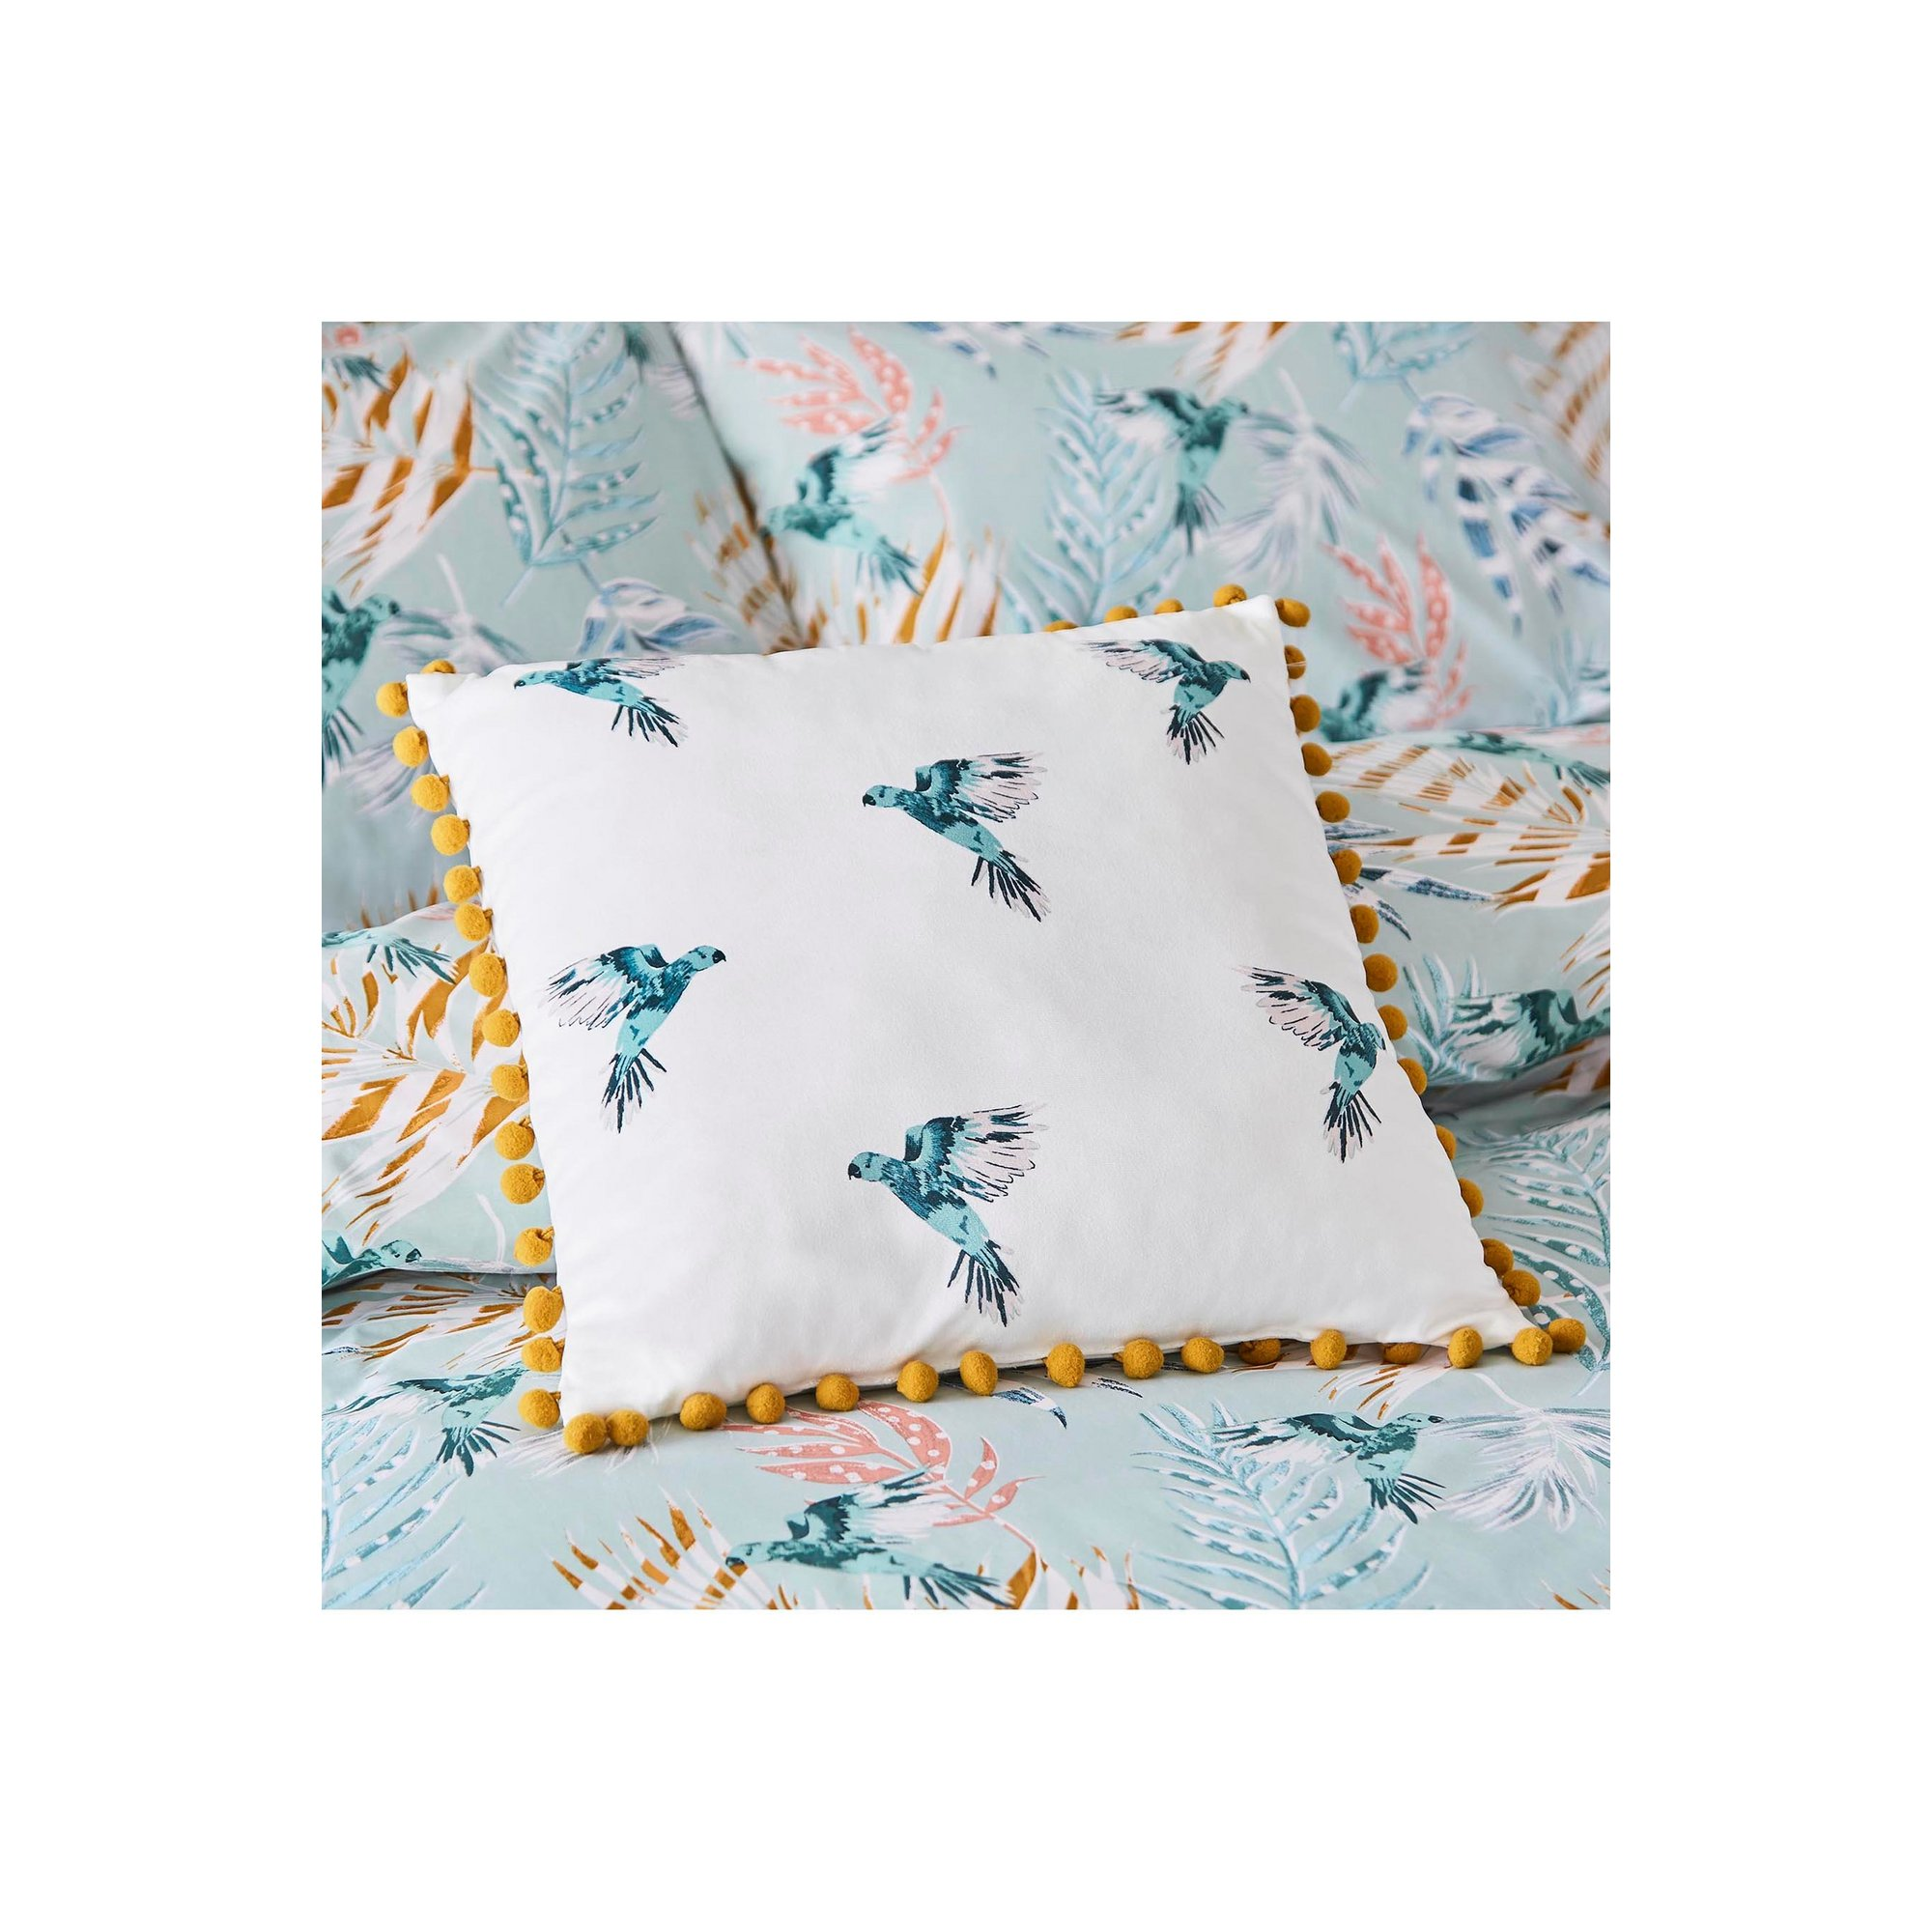 Image of Fat Face Paradise Parrot Filled Cushion